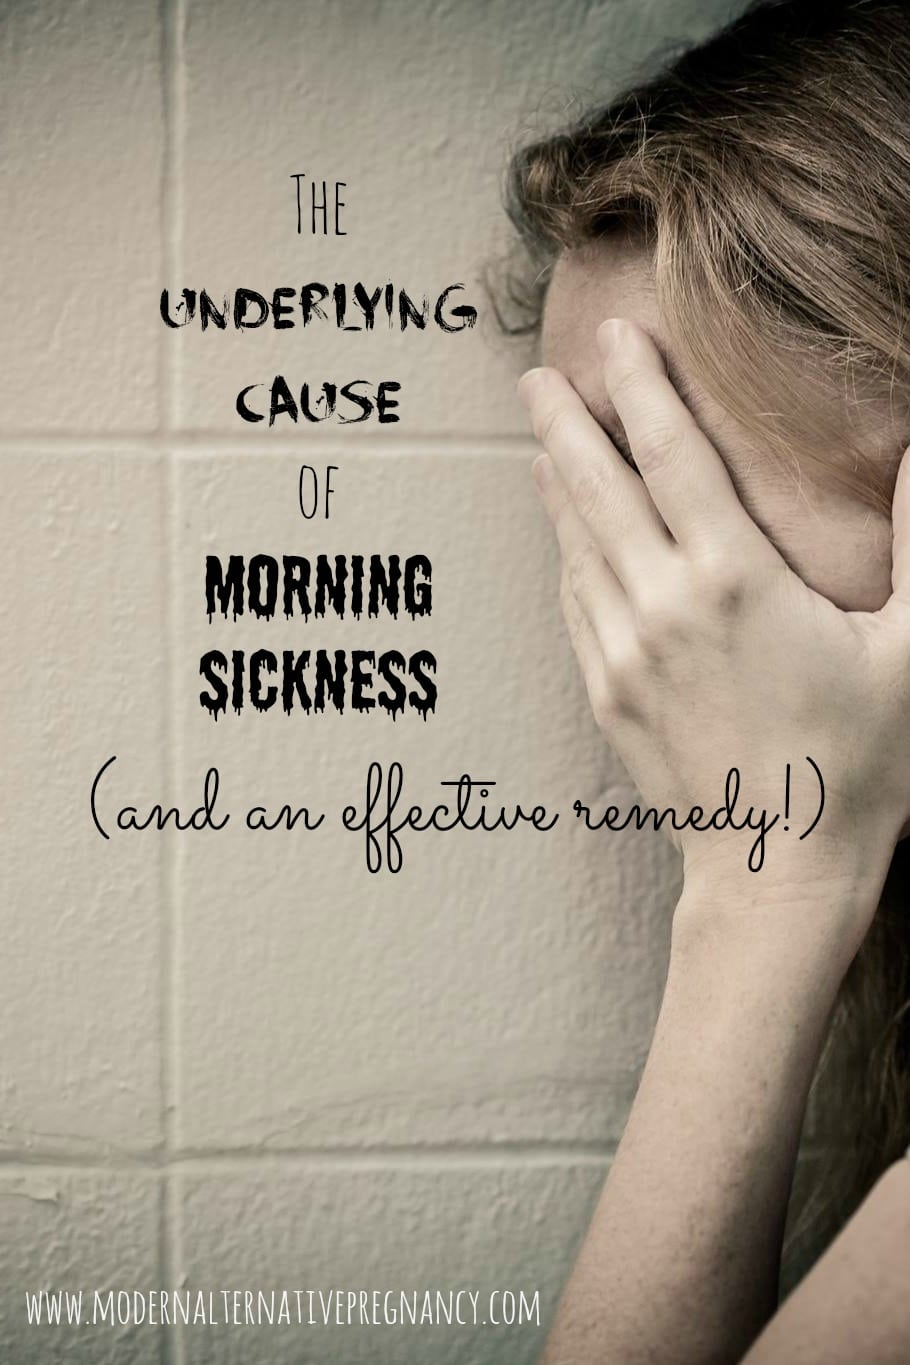 The Underlying Cause of Morning Sickness